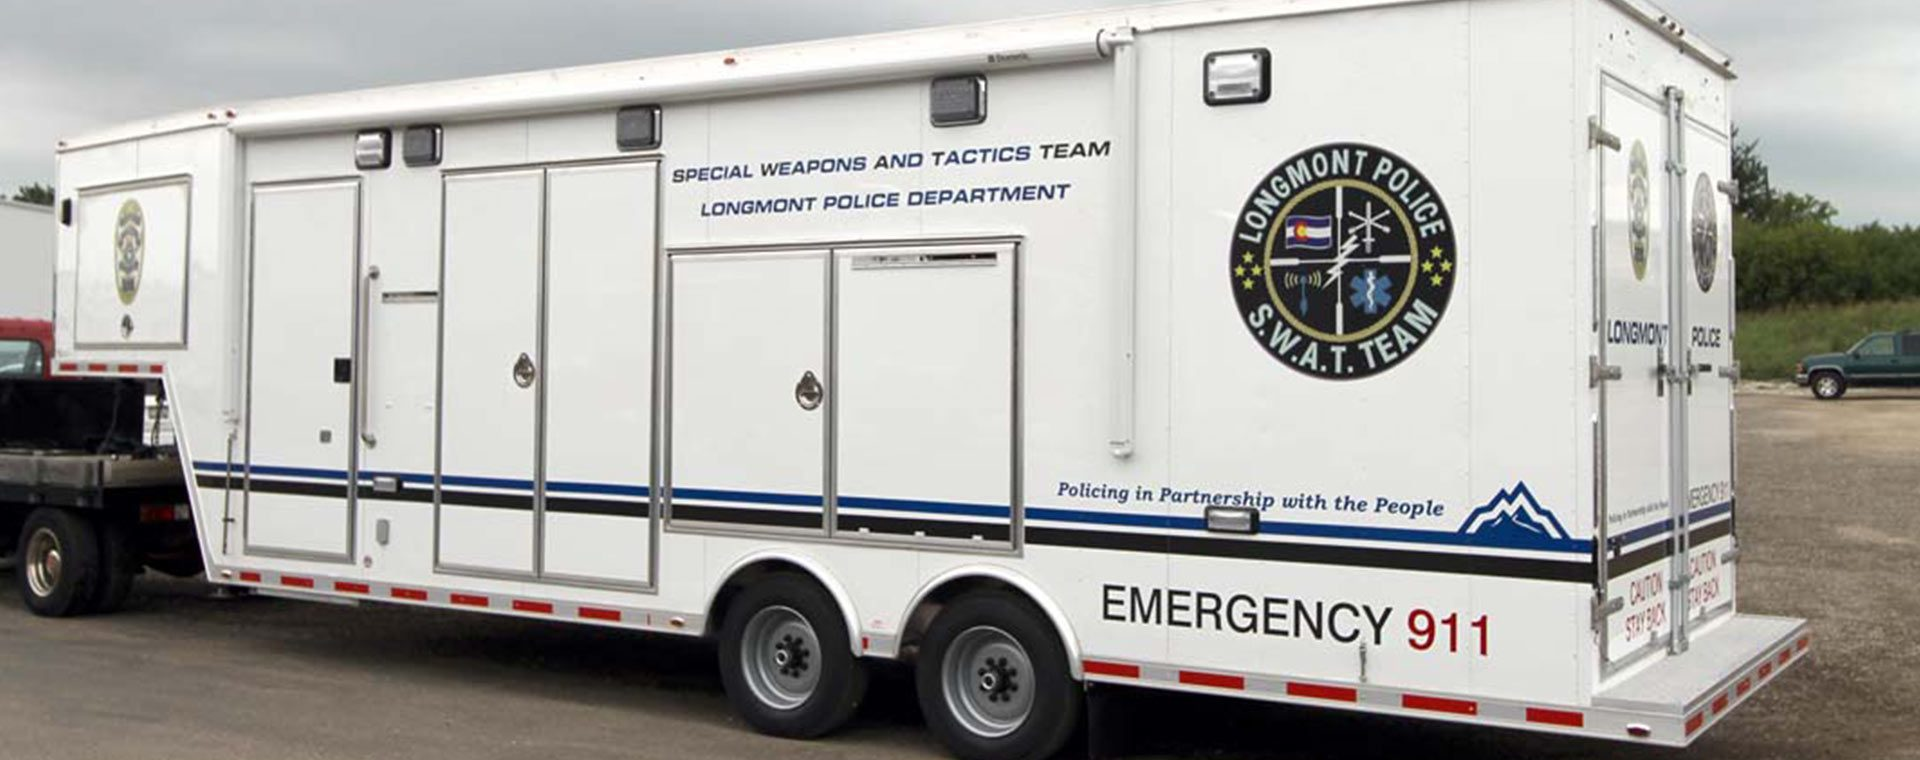 Longmont SWAT Team Equipment Trailer